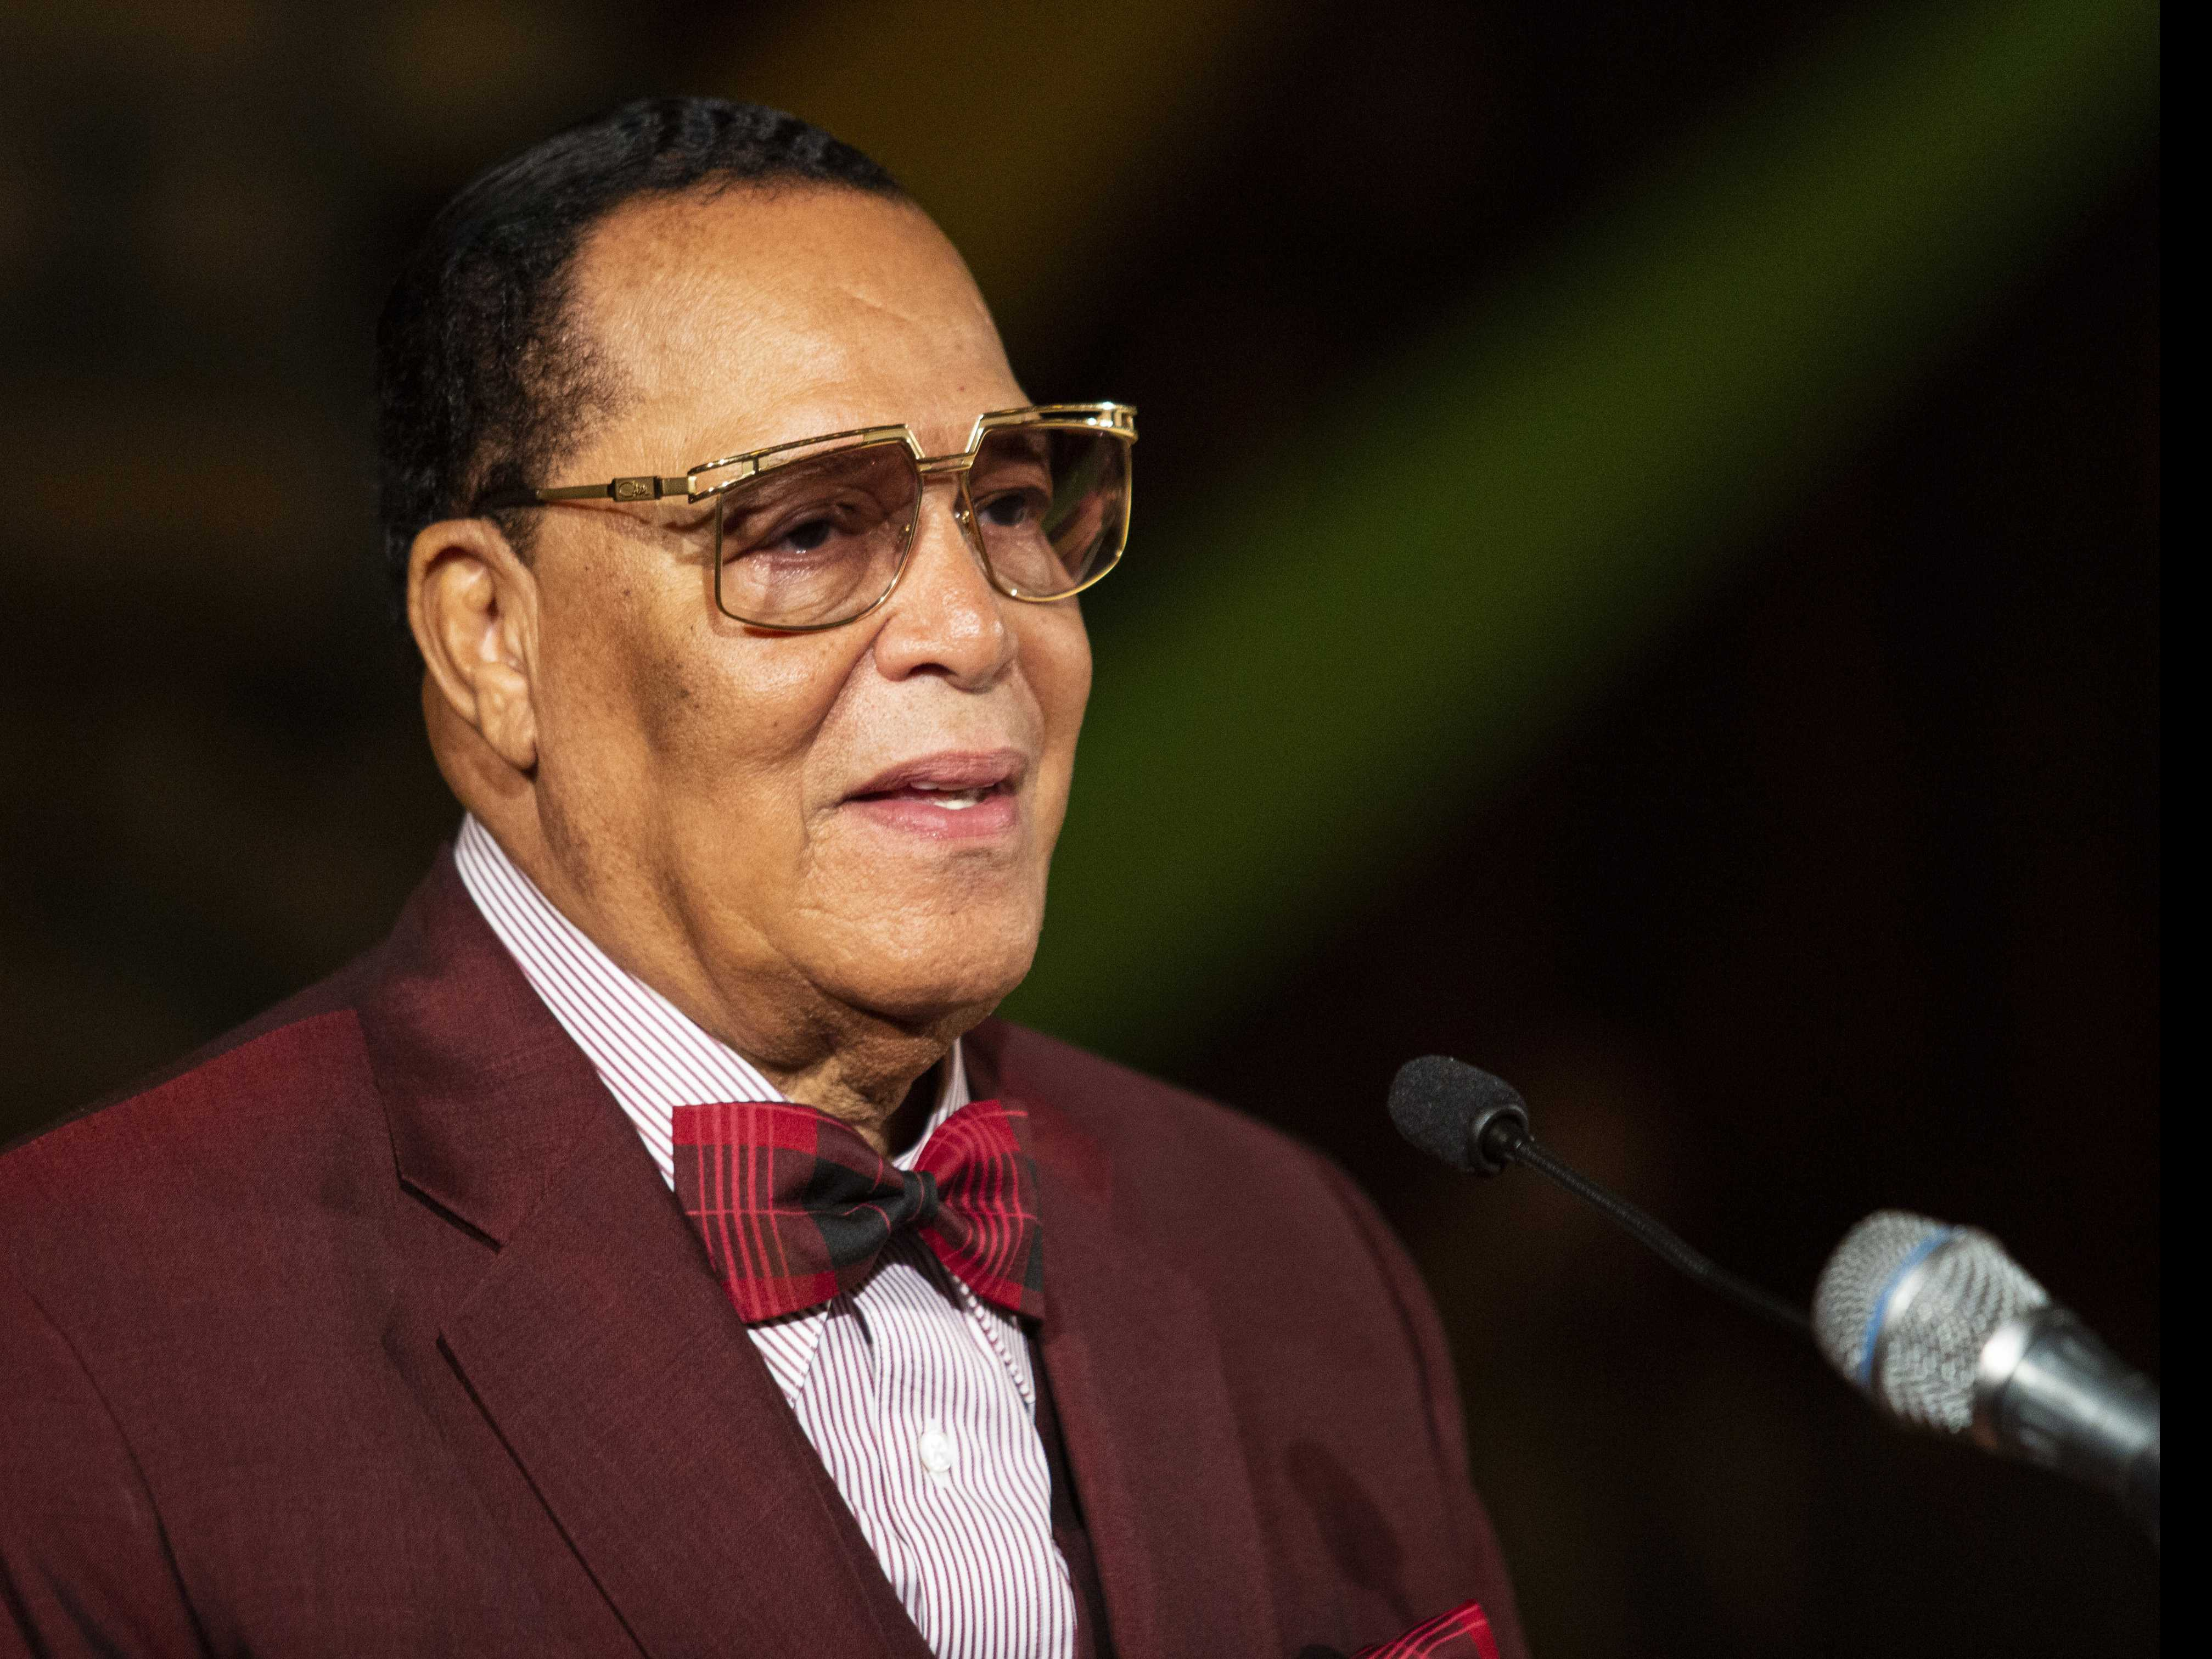 Farrakhan Says He Doesn't Hate Jewish People